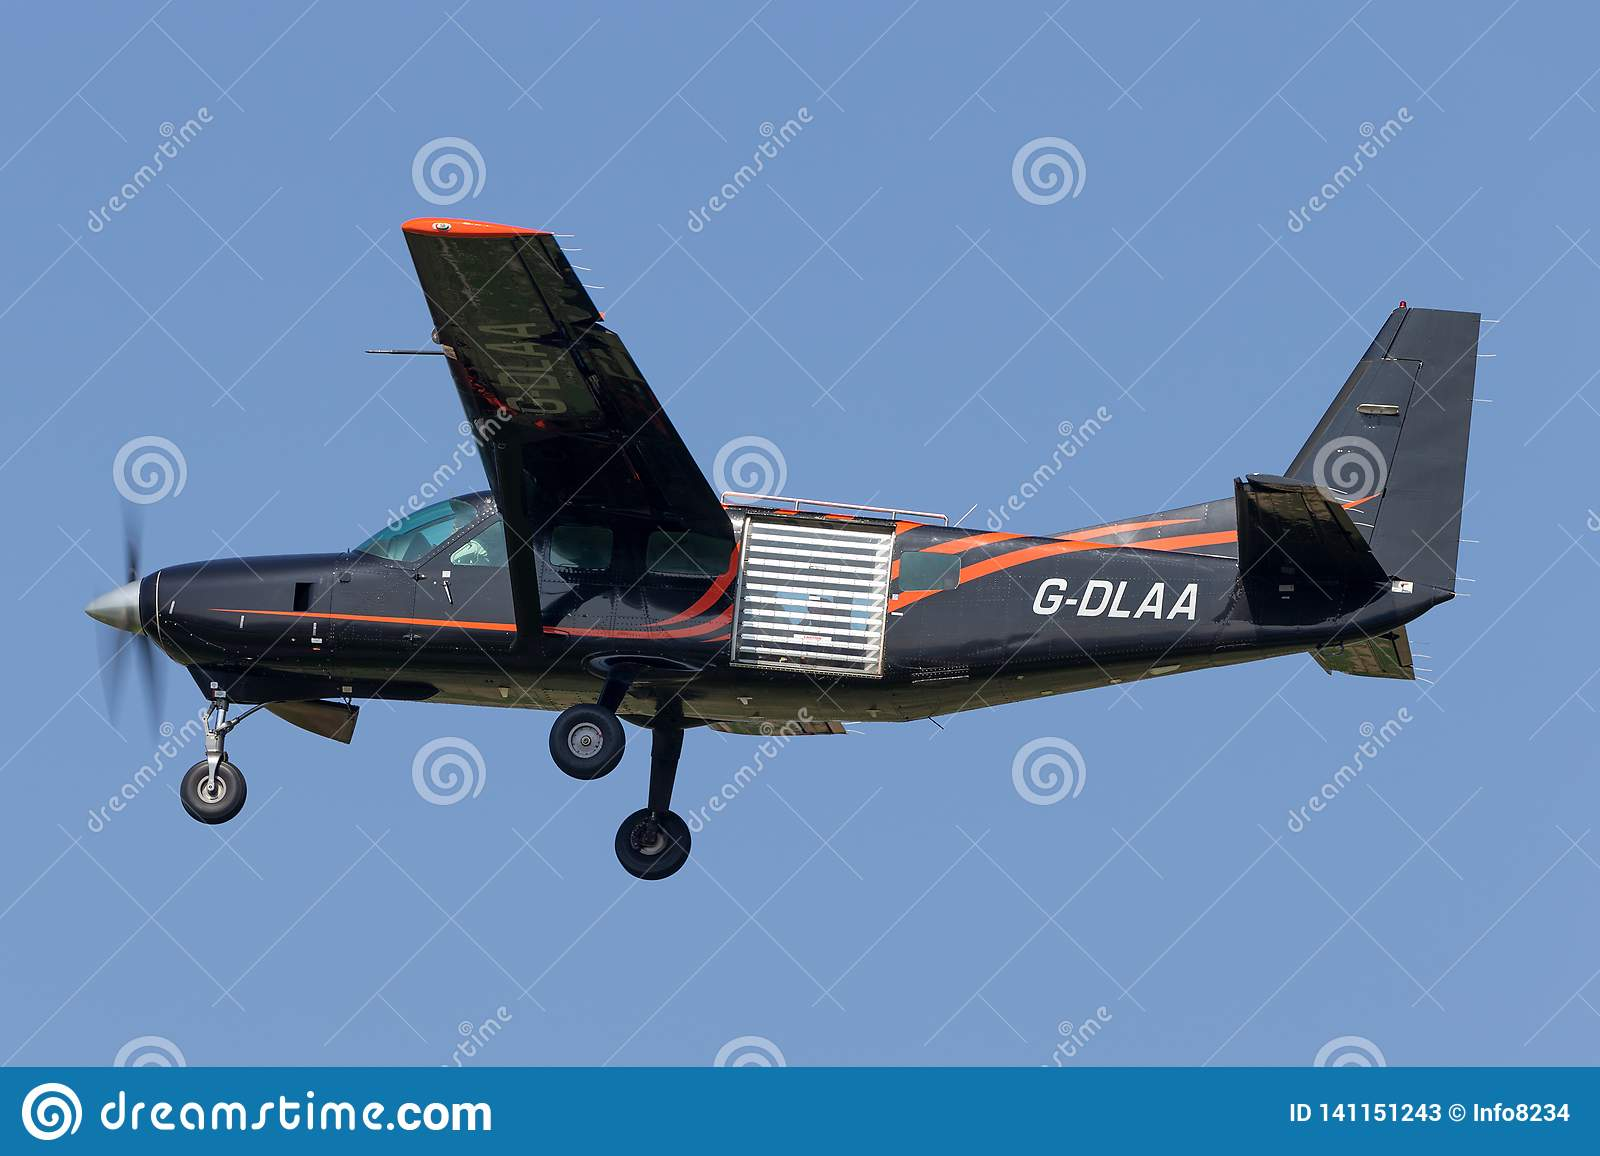 Cessna 208 Caravan Light Aircraft G-DLAA Used For Skydiving